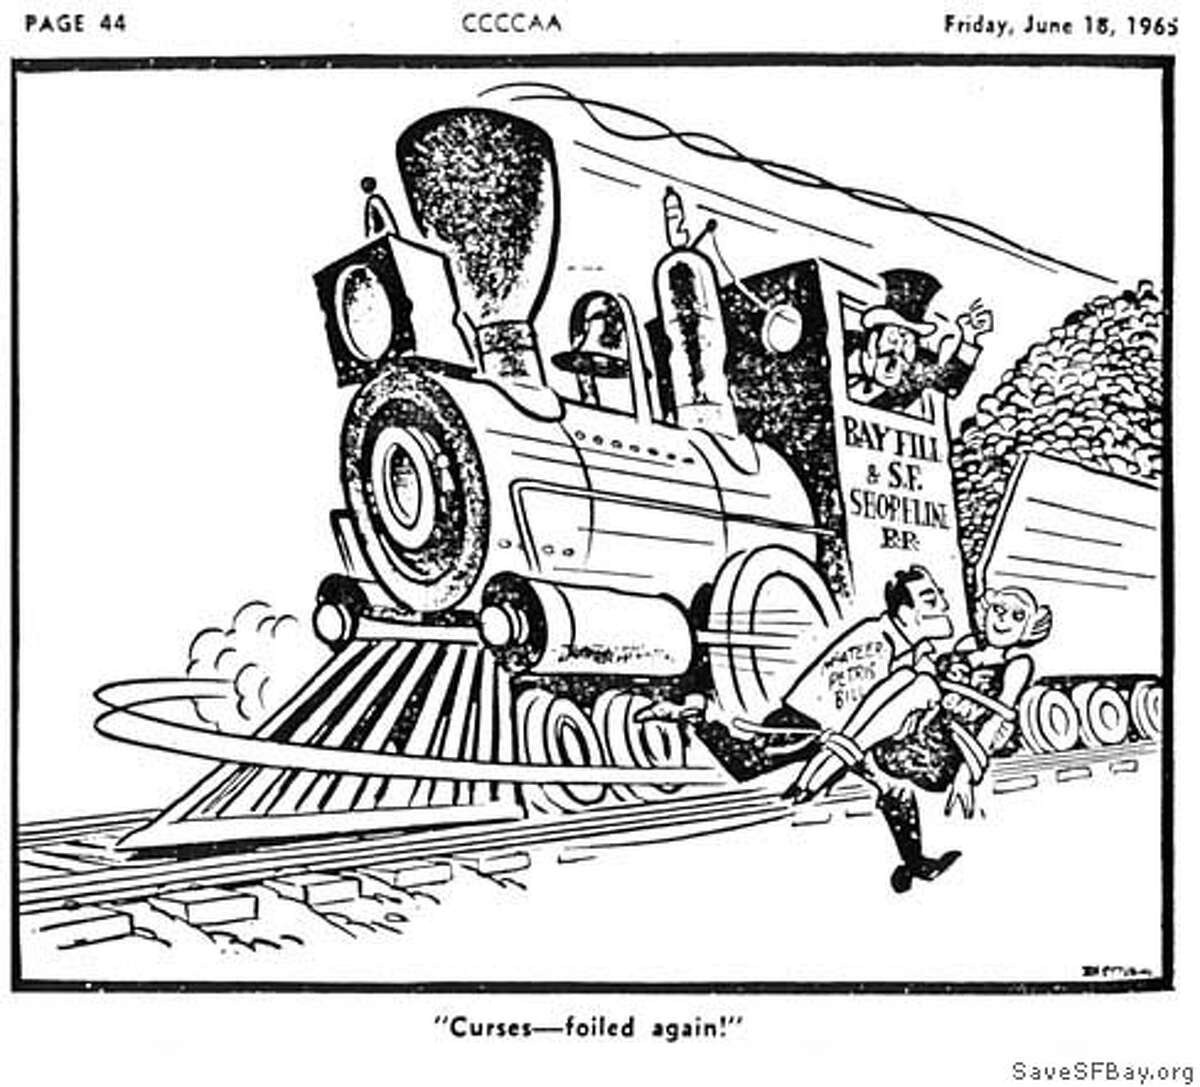 A Chronicle cartoon commented on the McAteer-Petris Act, which formed a study group that became the Bay Conservation and Development Commission. Image courtesy of SaveSFBay.org